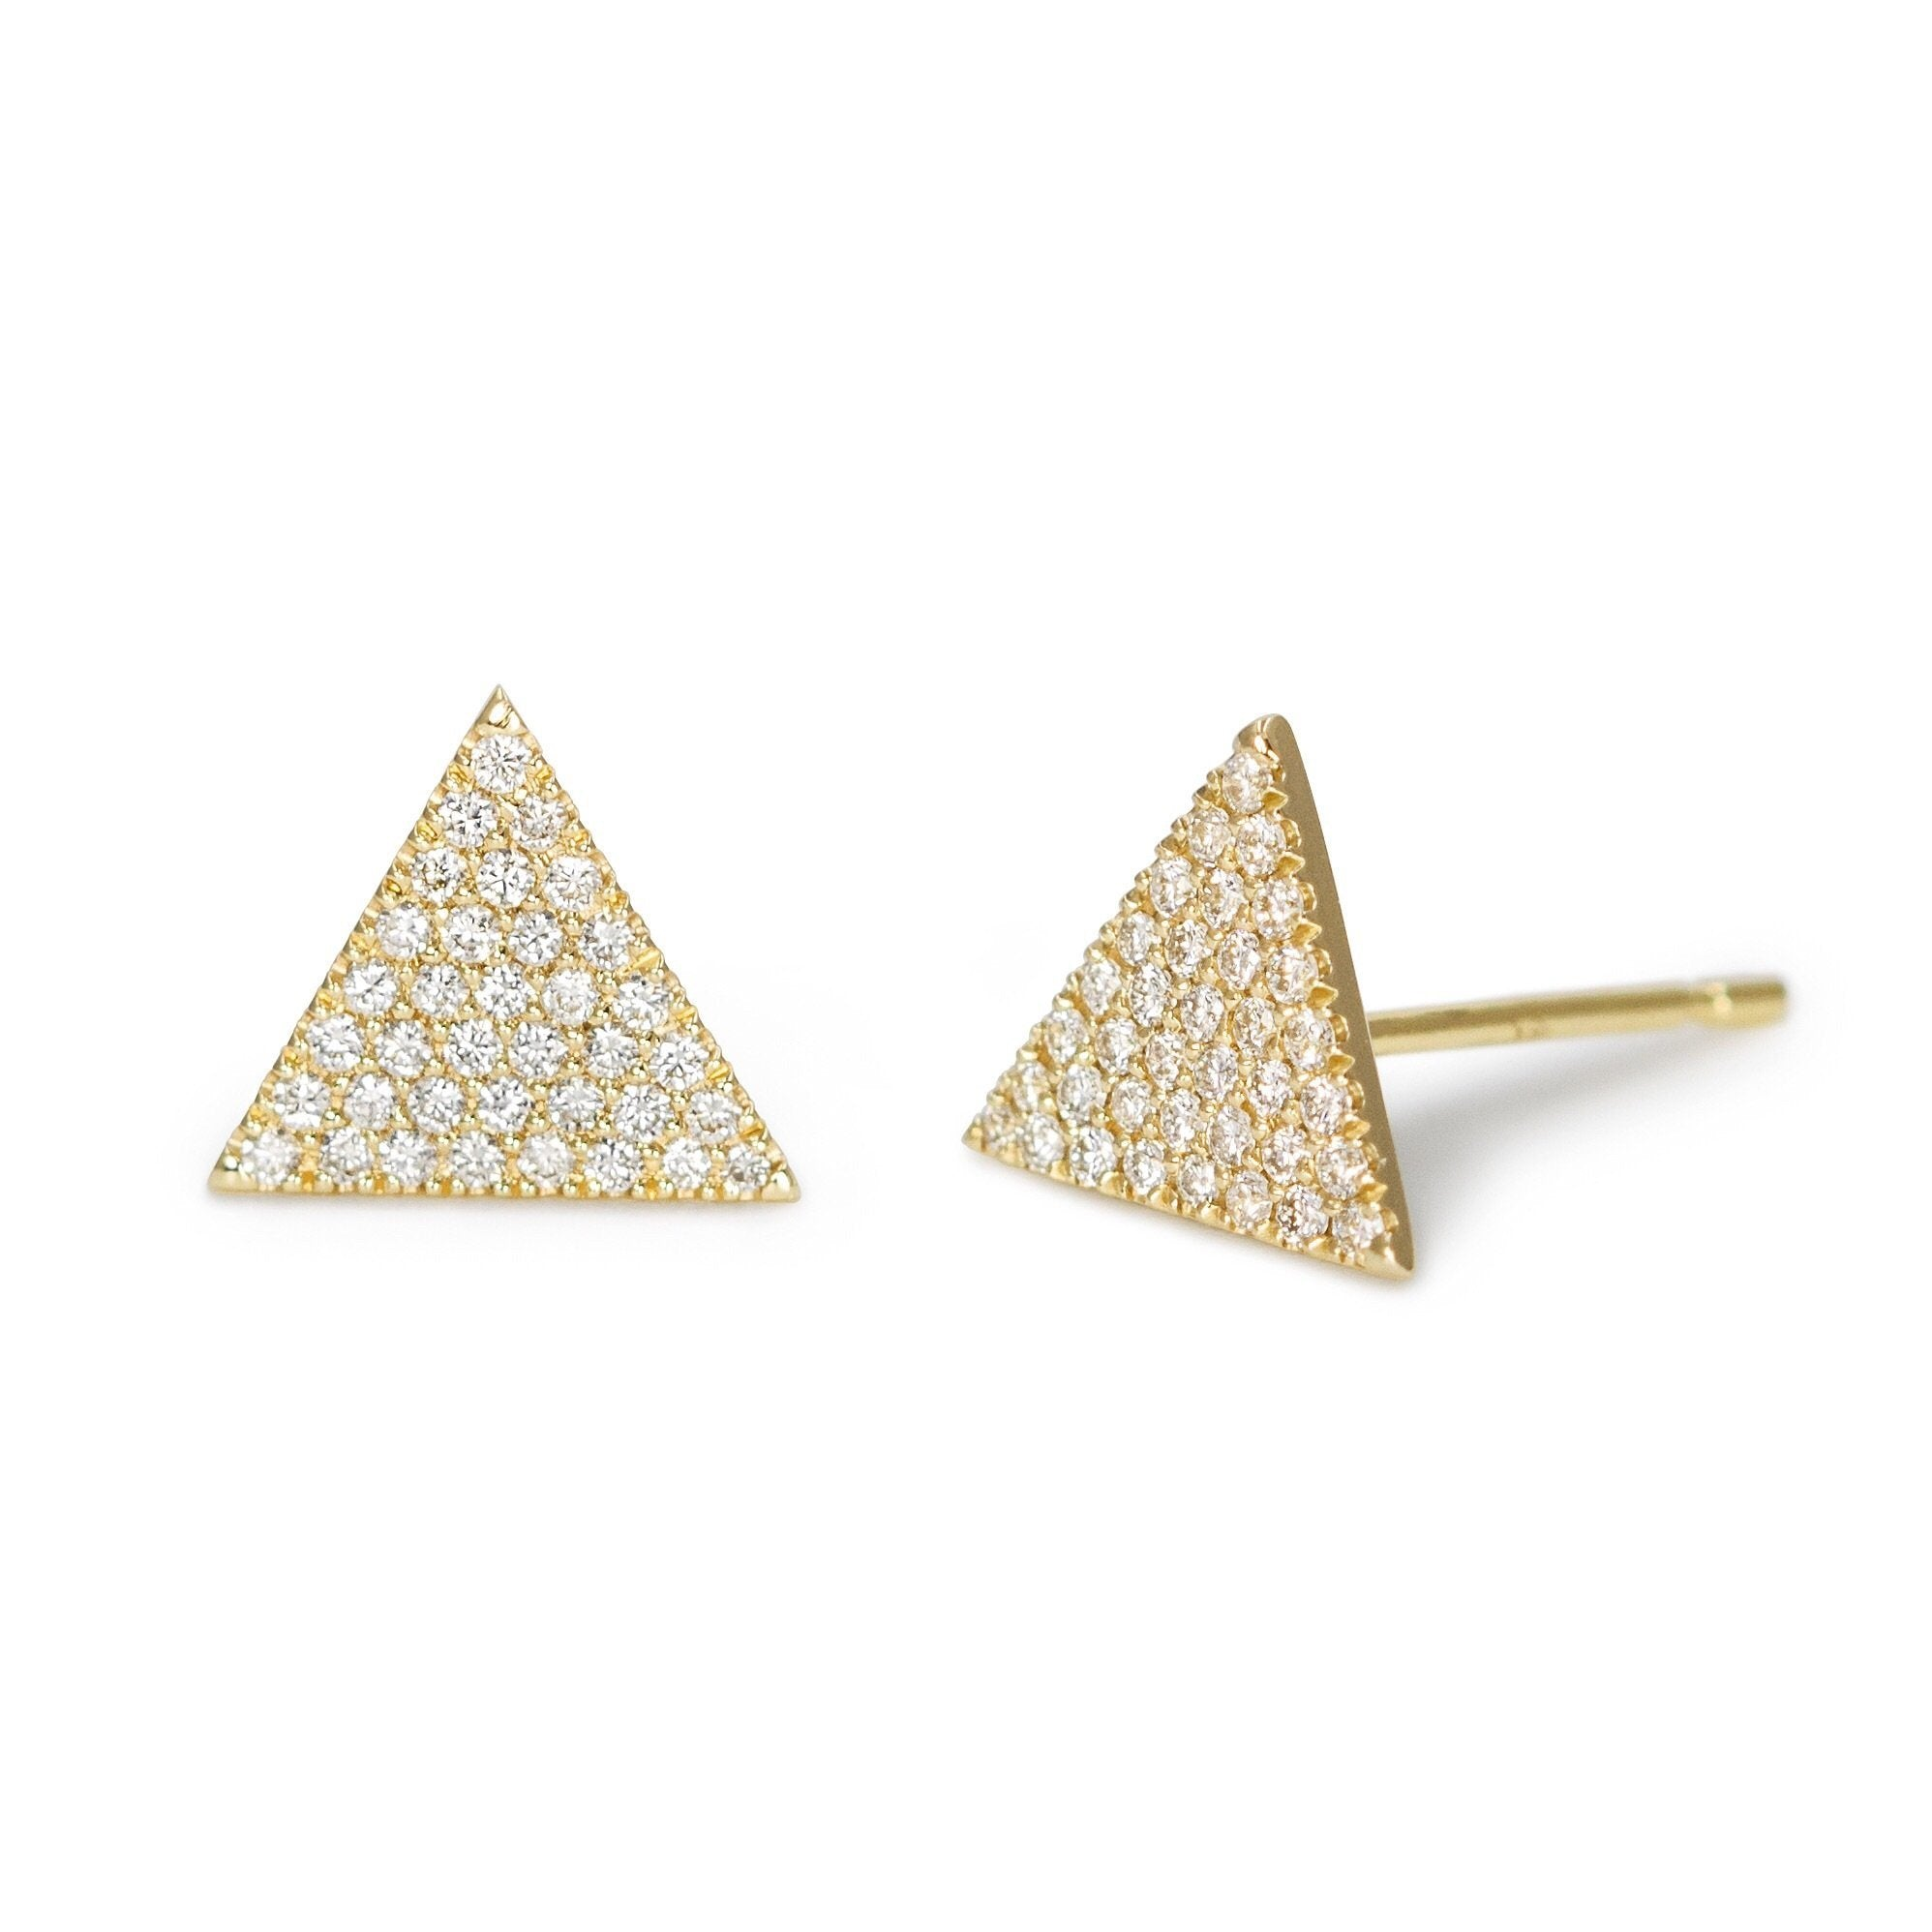 Large Triangle Pavé Diamond Stud Earrings